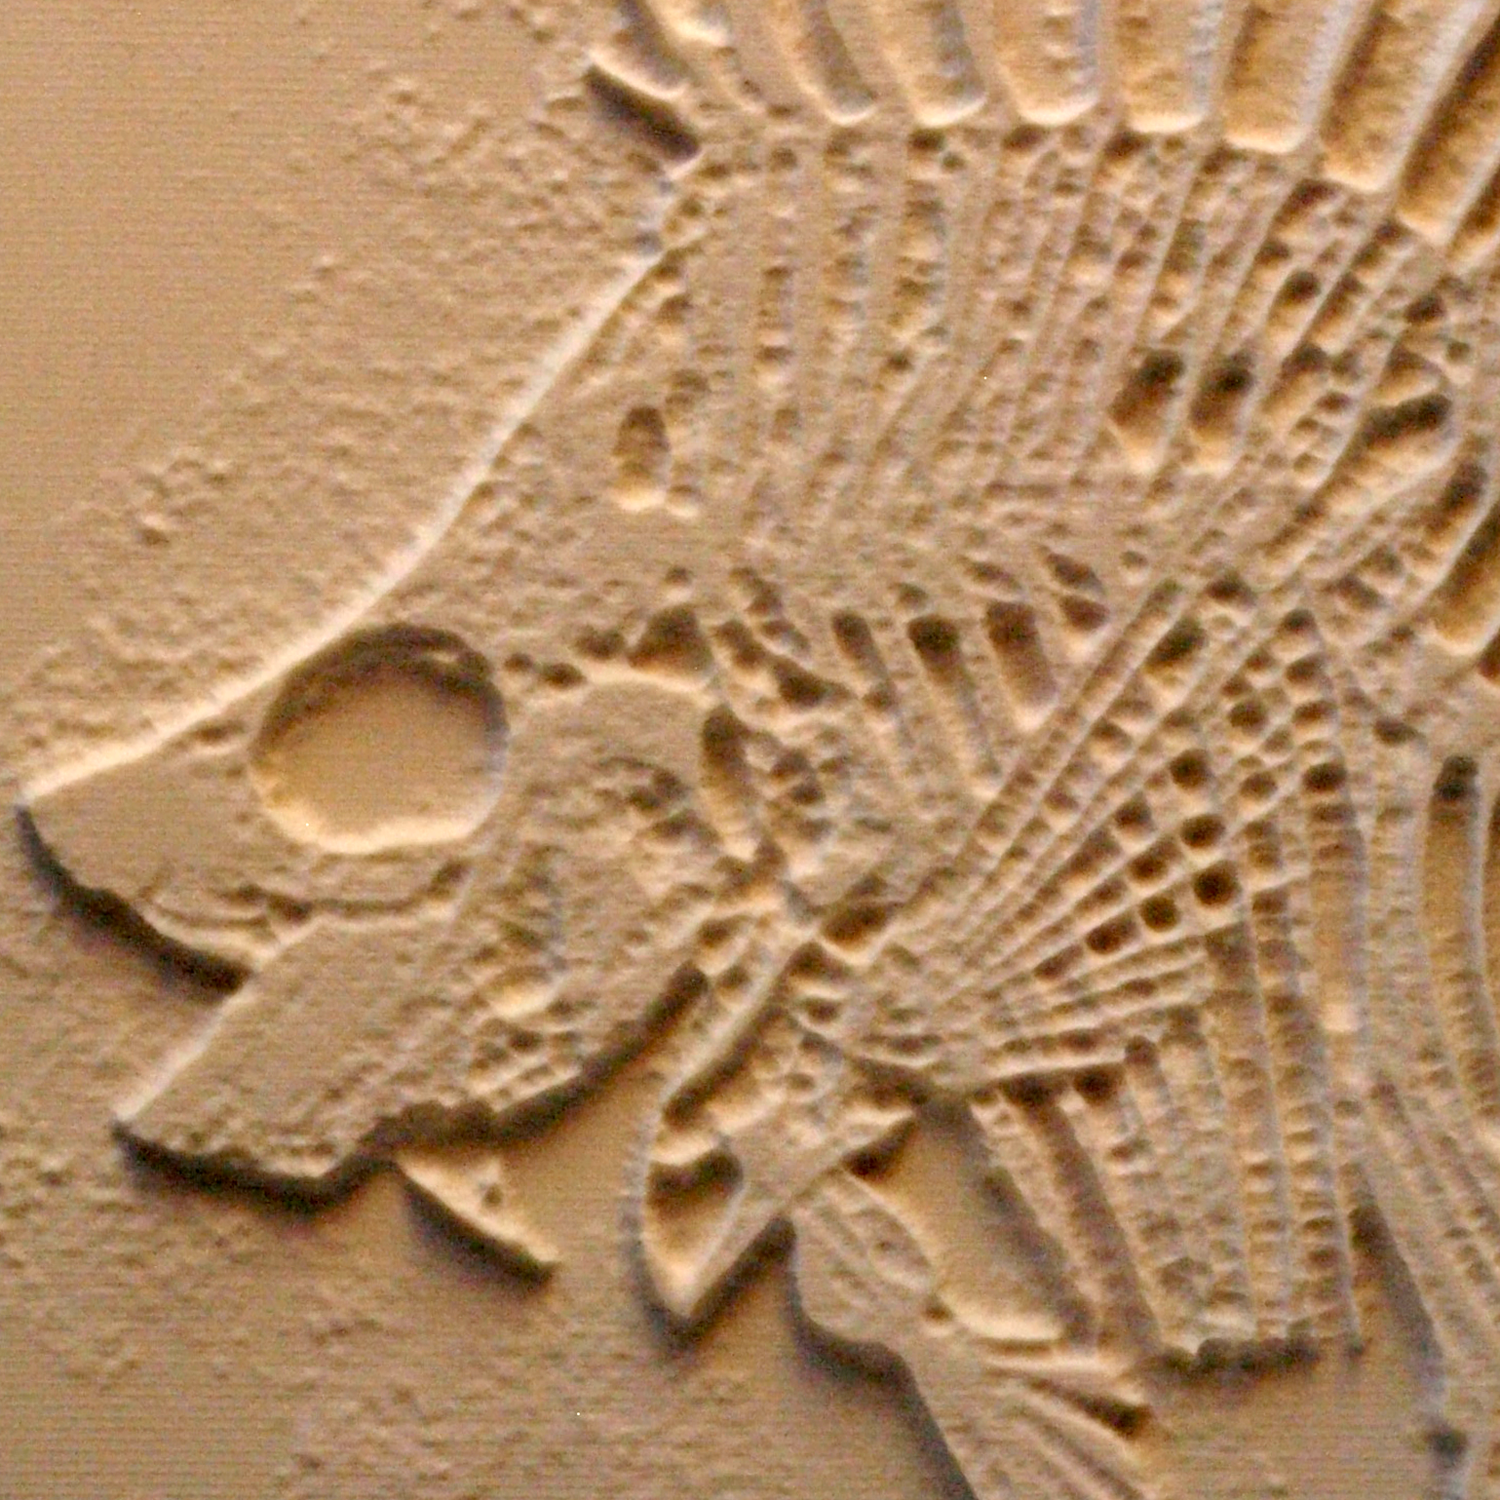 fish skeleton.png